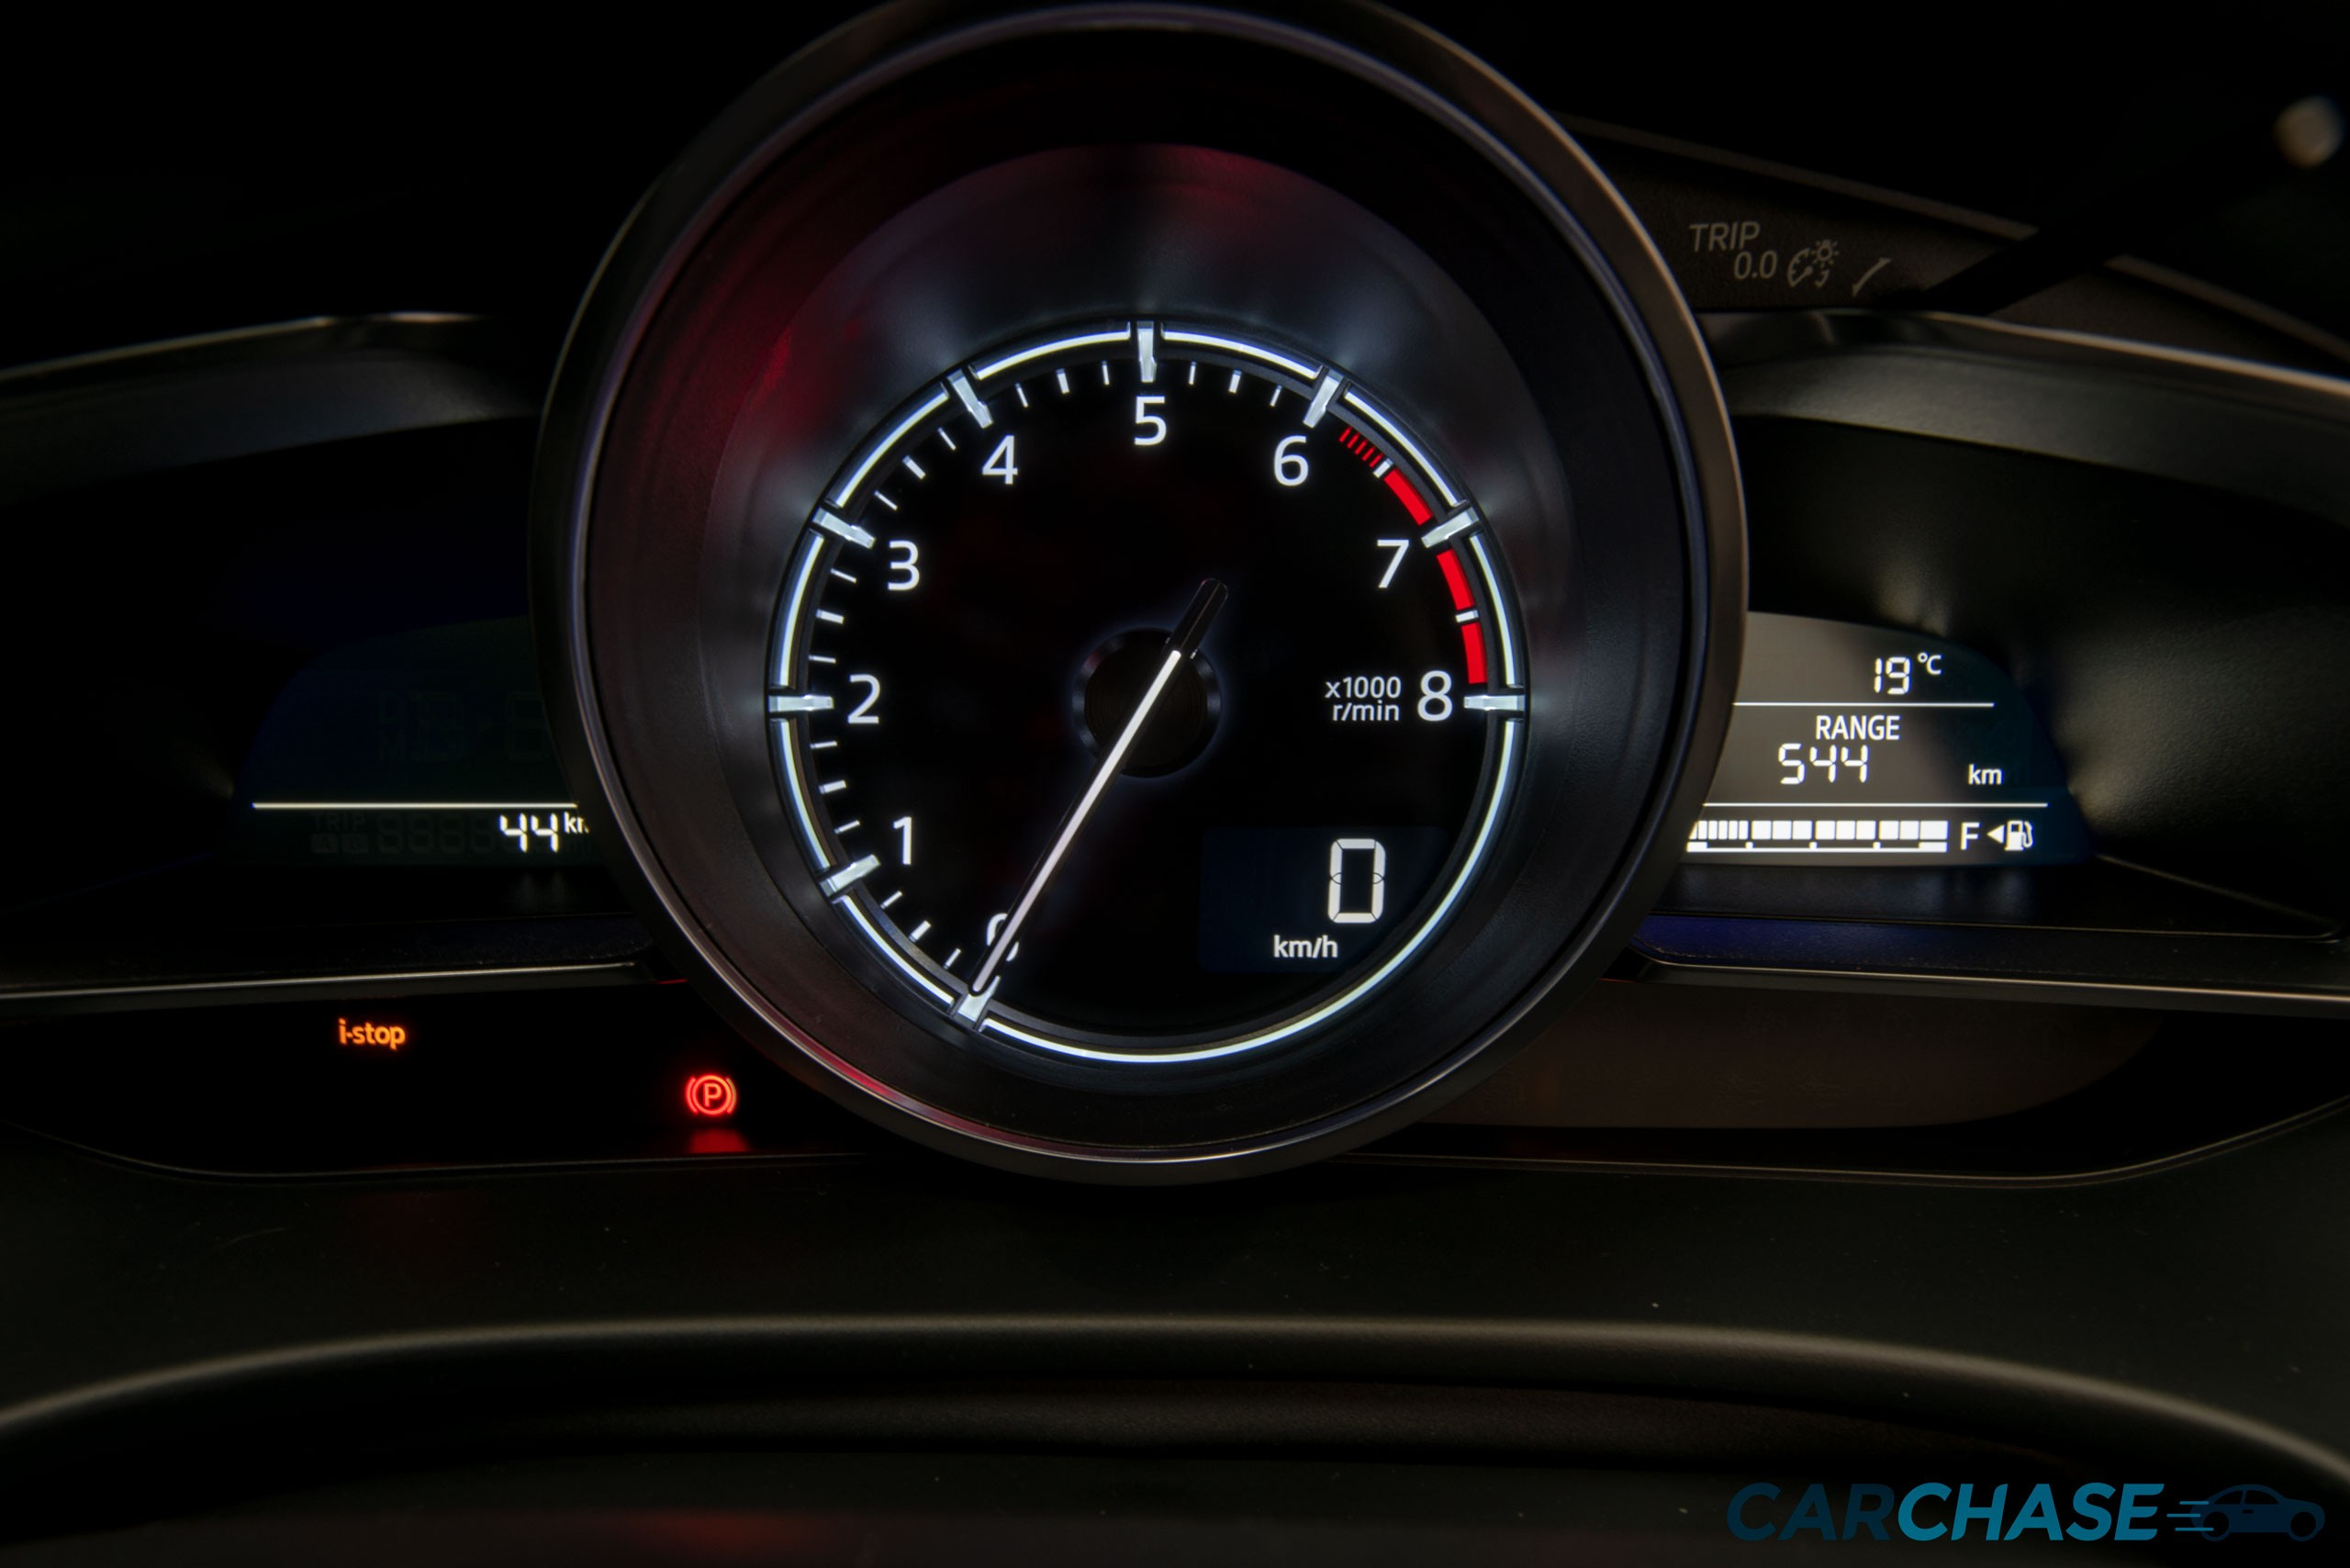 Image of dials profile of 2018 Mazda 3 SP25 GT